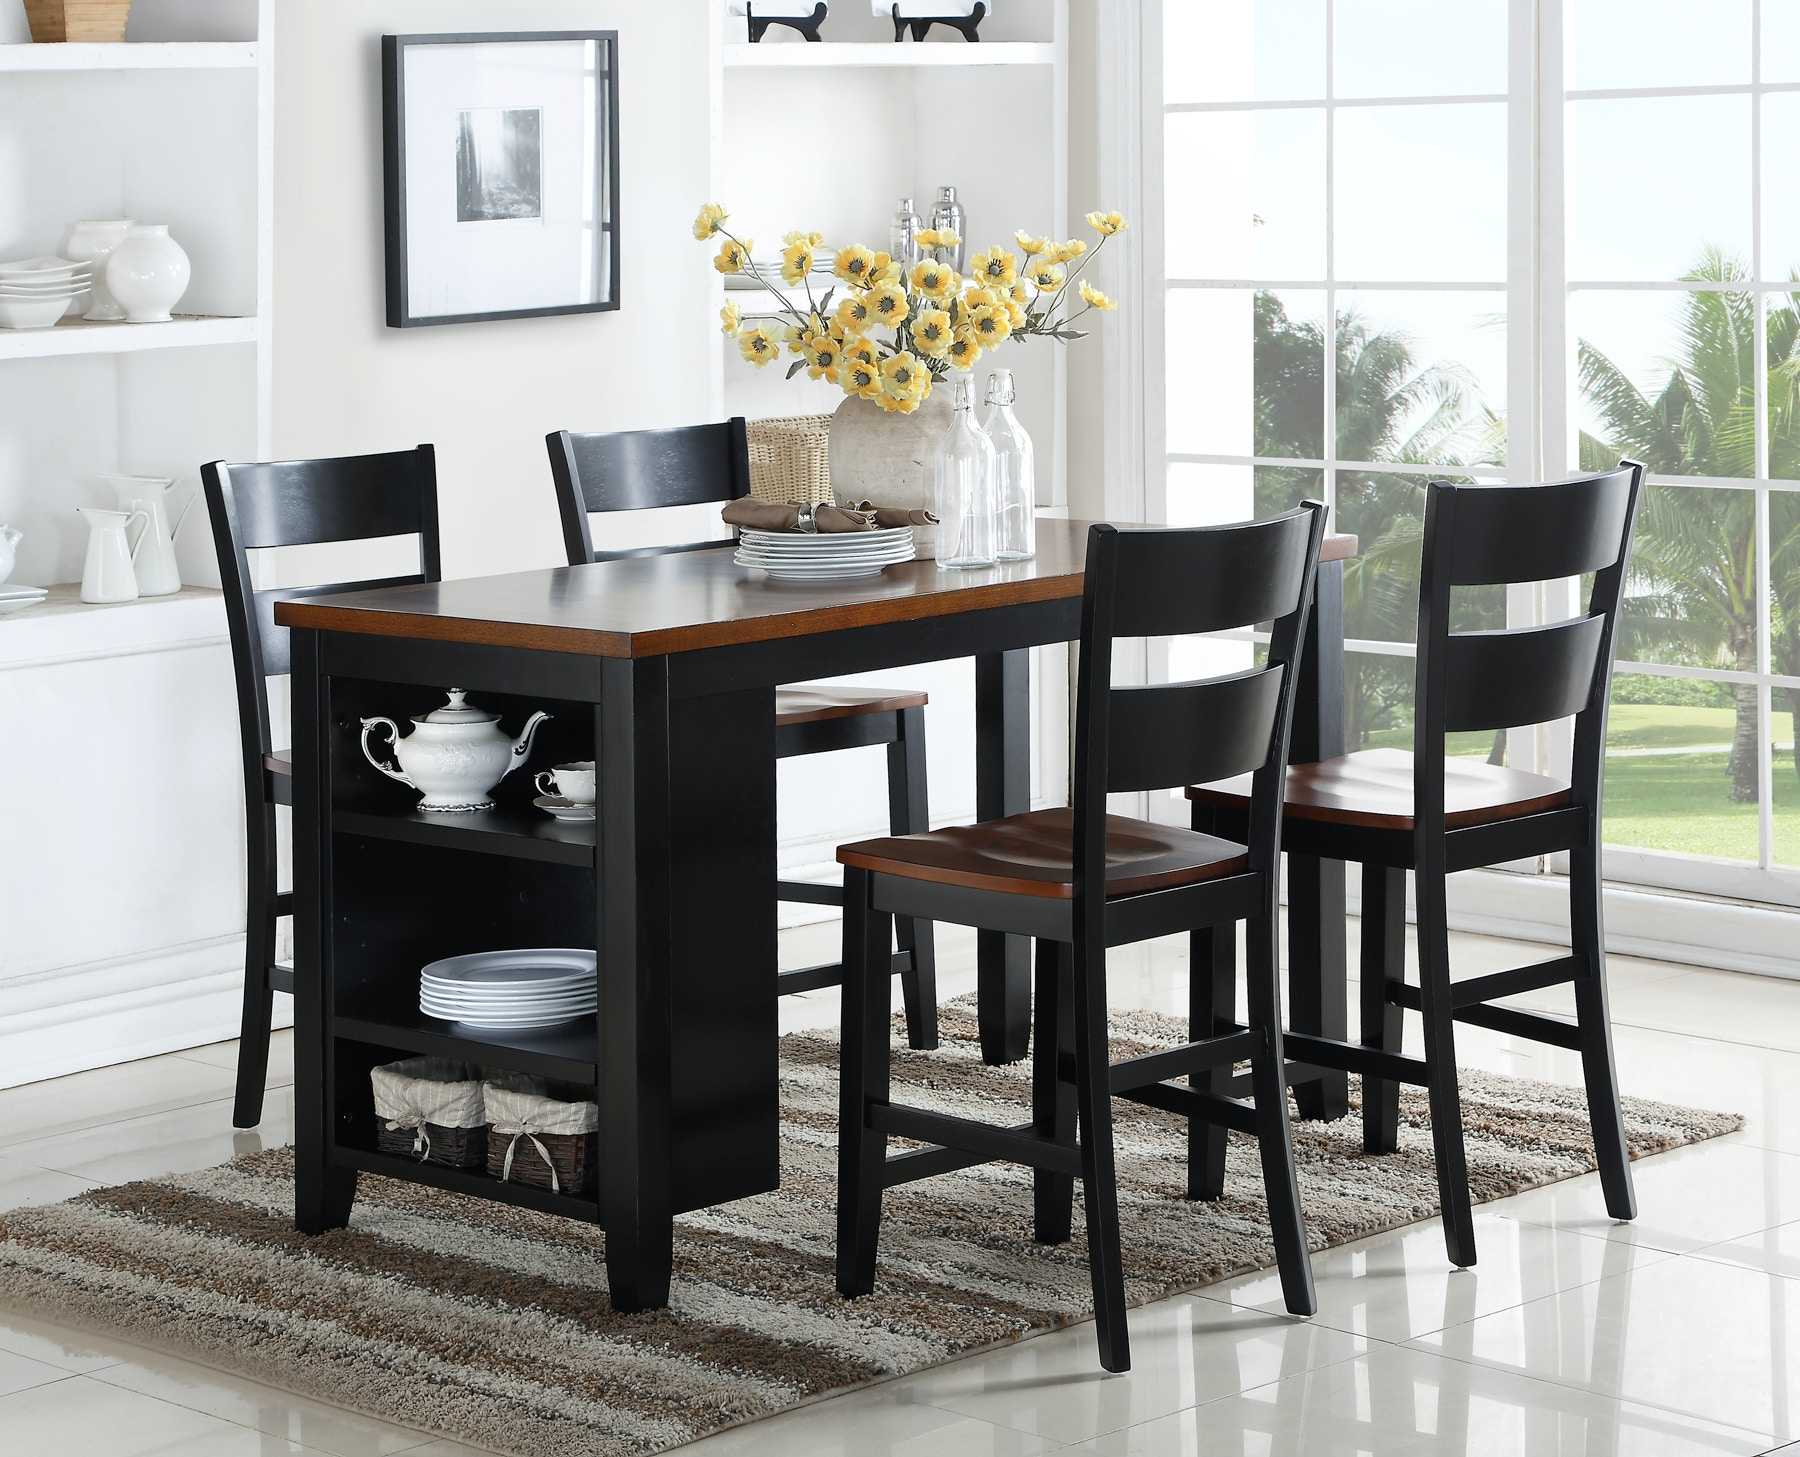 Holland House Findlay Kitchen Island With Stools 923828